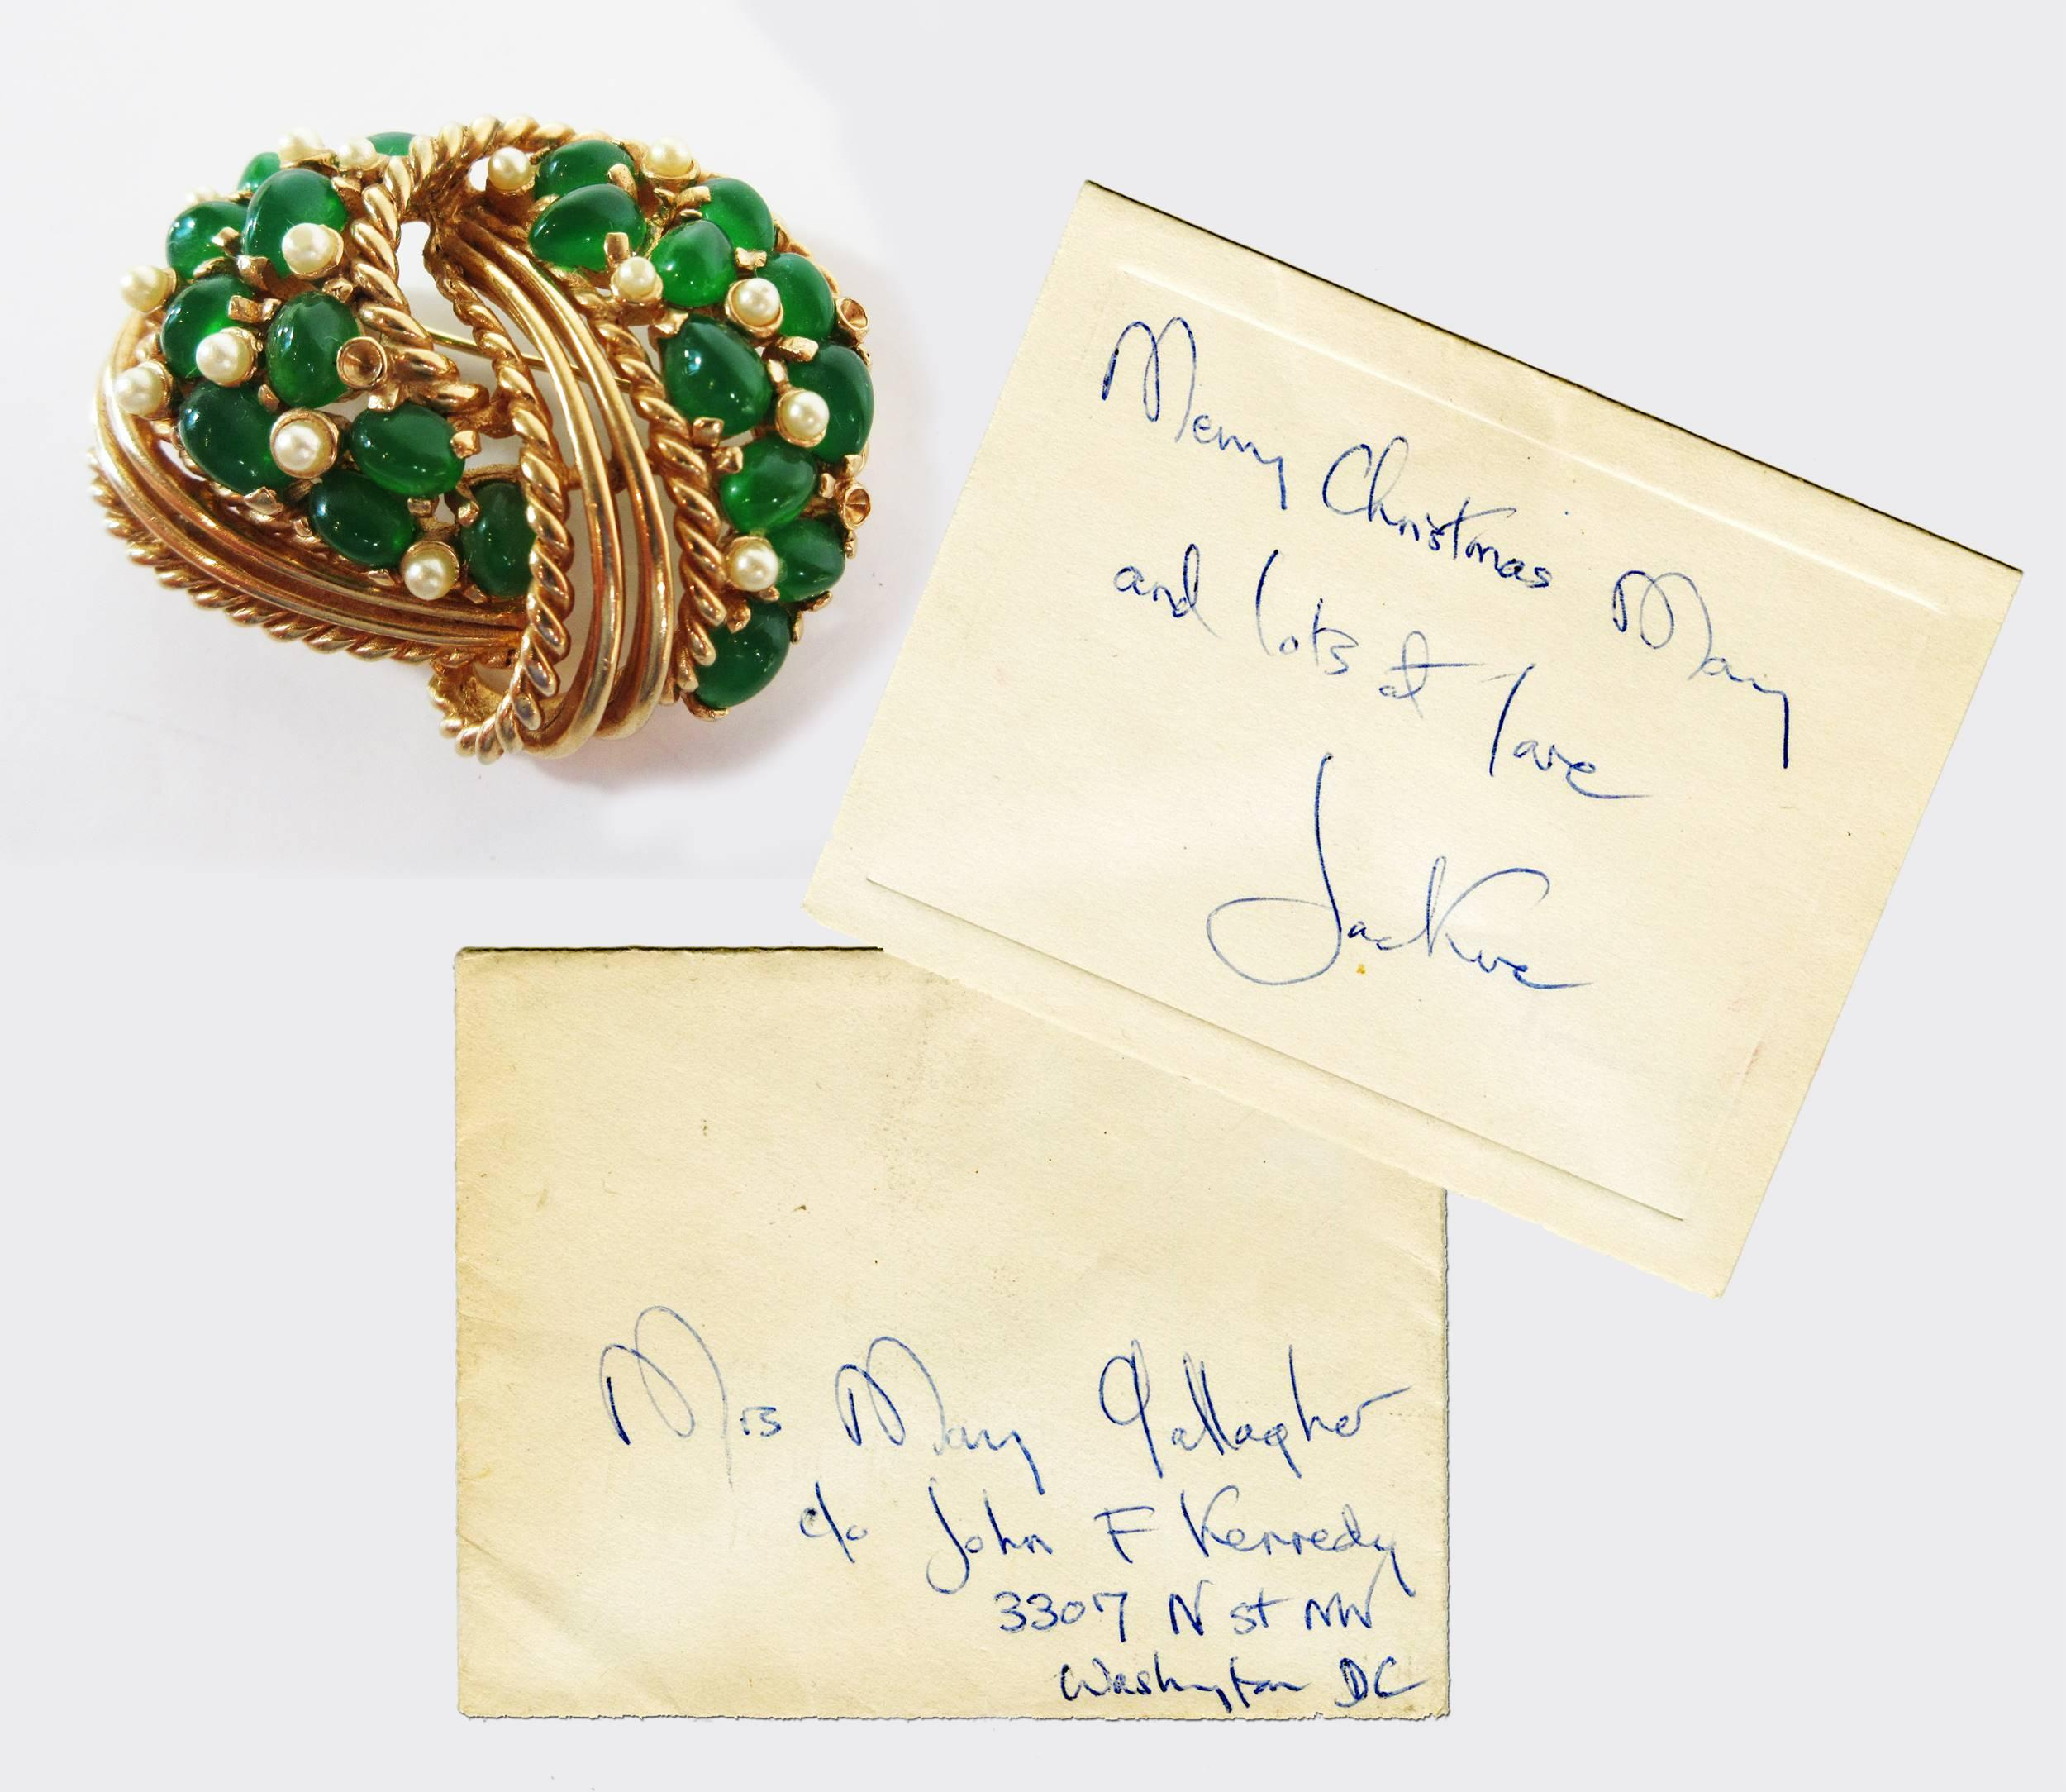 Jackie Kennedy Owned Boucher Large Exquisite Brooch